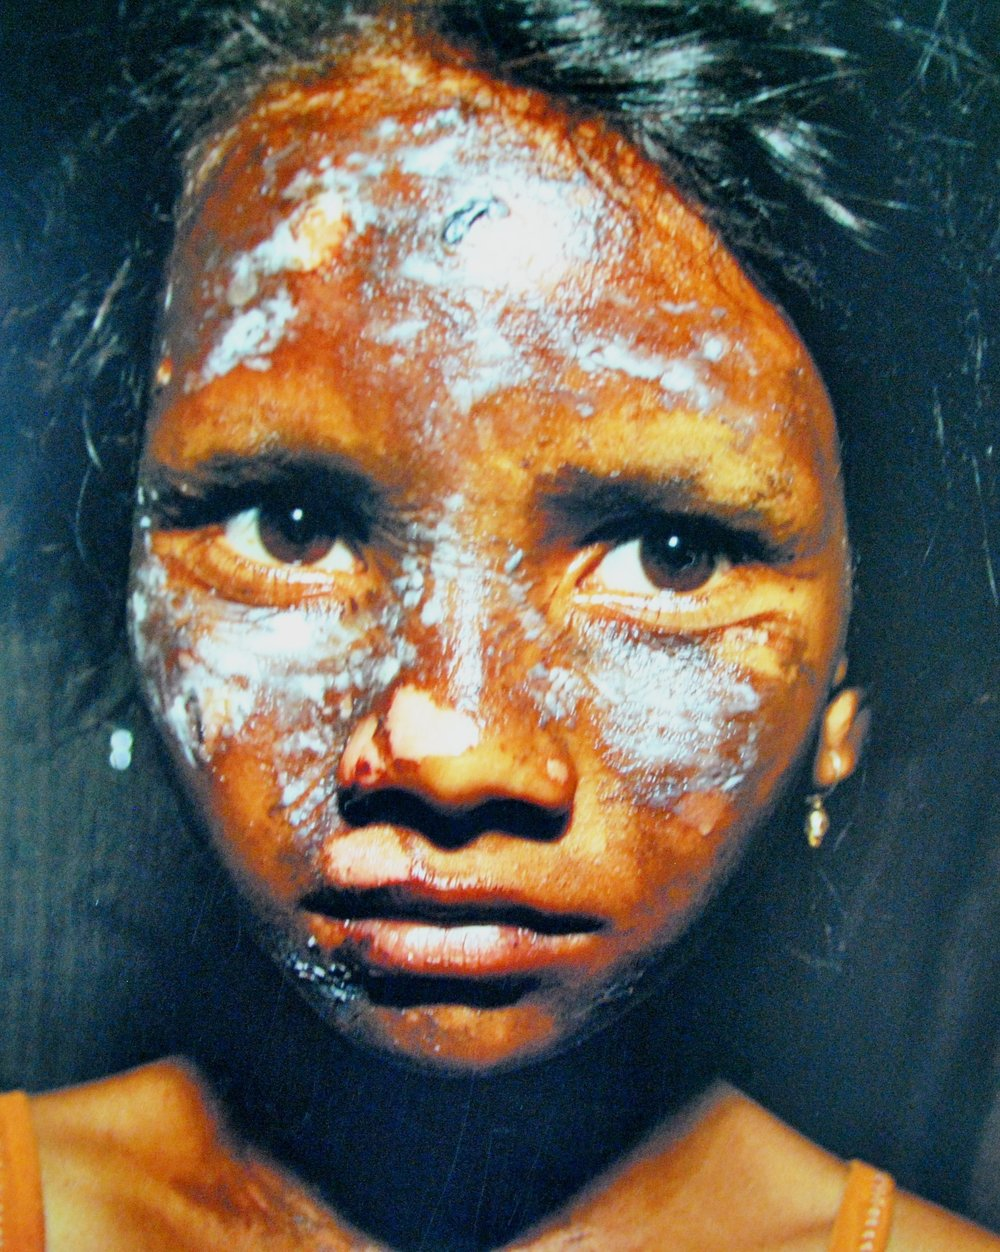 Namrata Nayak, a 10-year-old Dalit from the Christian community in Kandhamal, became the victim of Hindu extremists in 2008. Her face was disfigured by a bomb thrown by the mob. Photo by Vishal Arora.